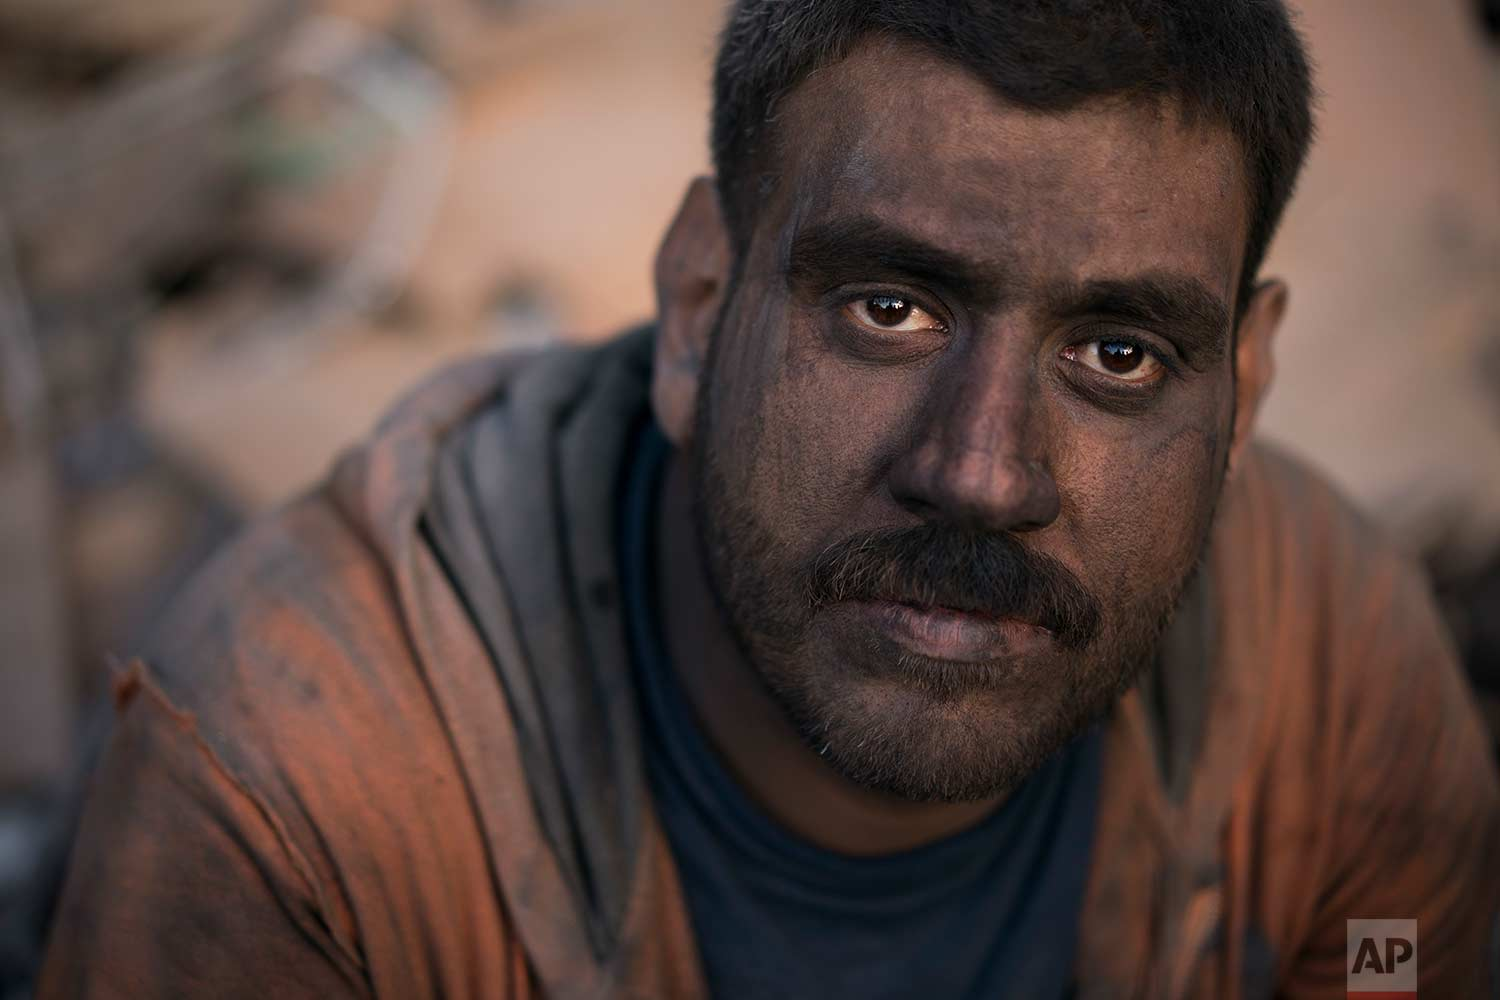 In this Nov. 15, 2017 photo, Ahmed Maha sits with his face covered in dirt after a day of work removing debris from a shop in the Old City of Mosul, Iraq. (AP Photo/Felipe Dana)